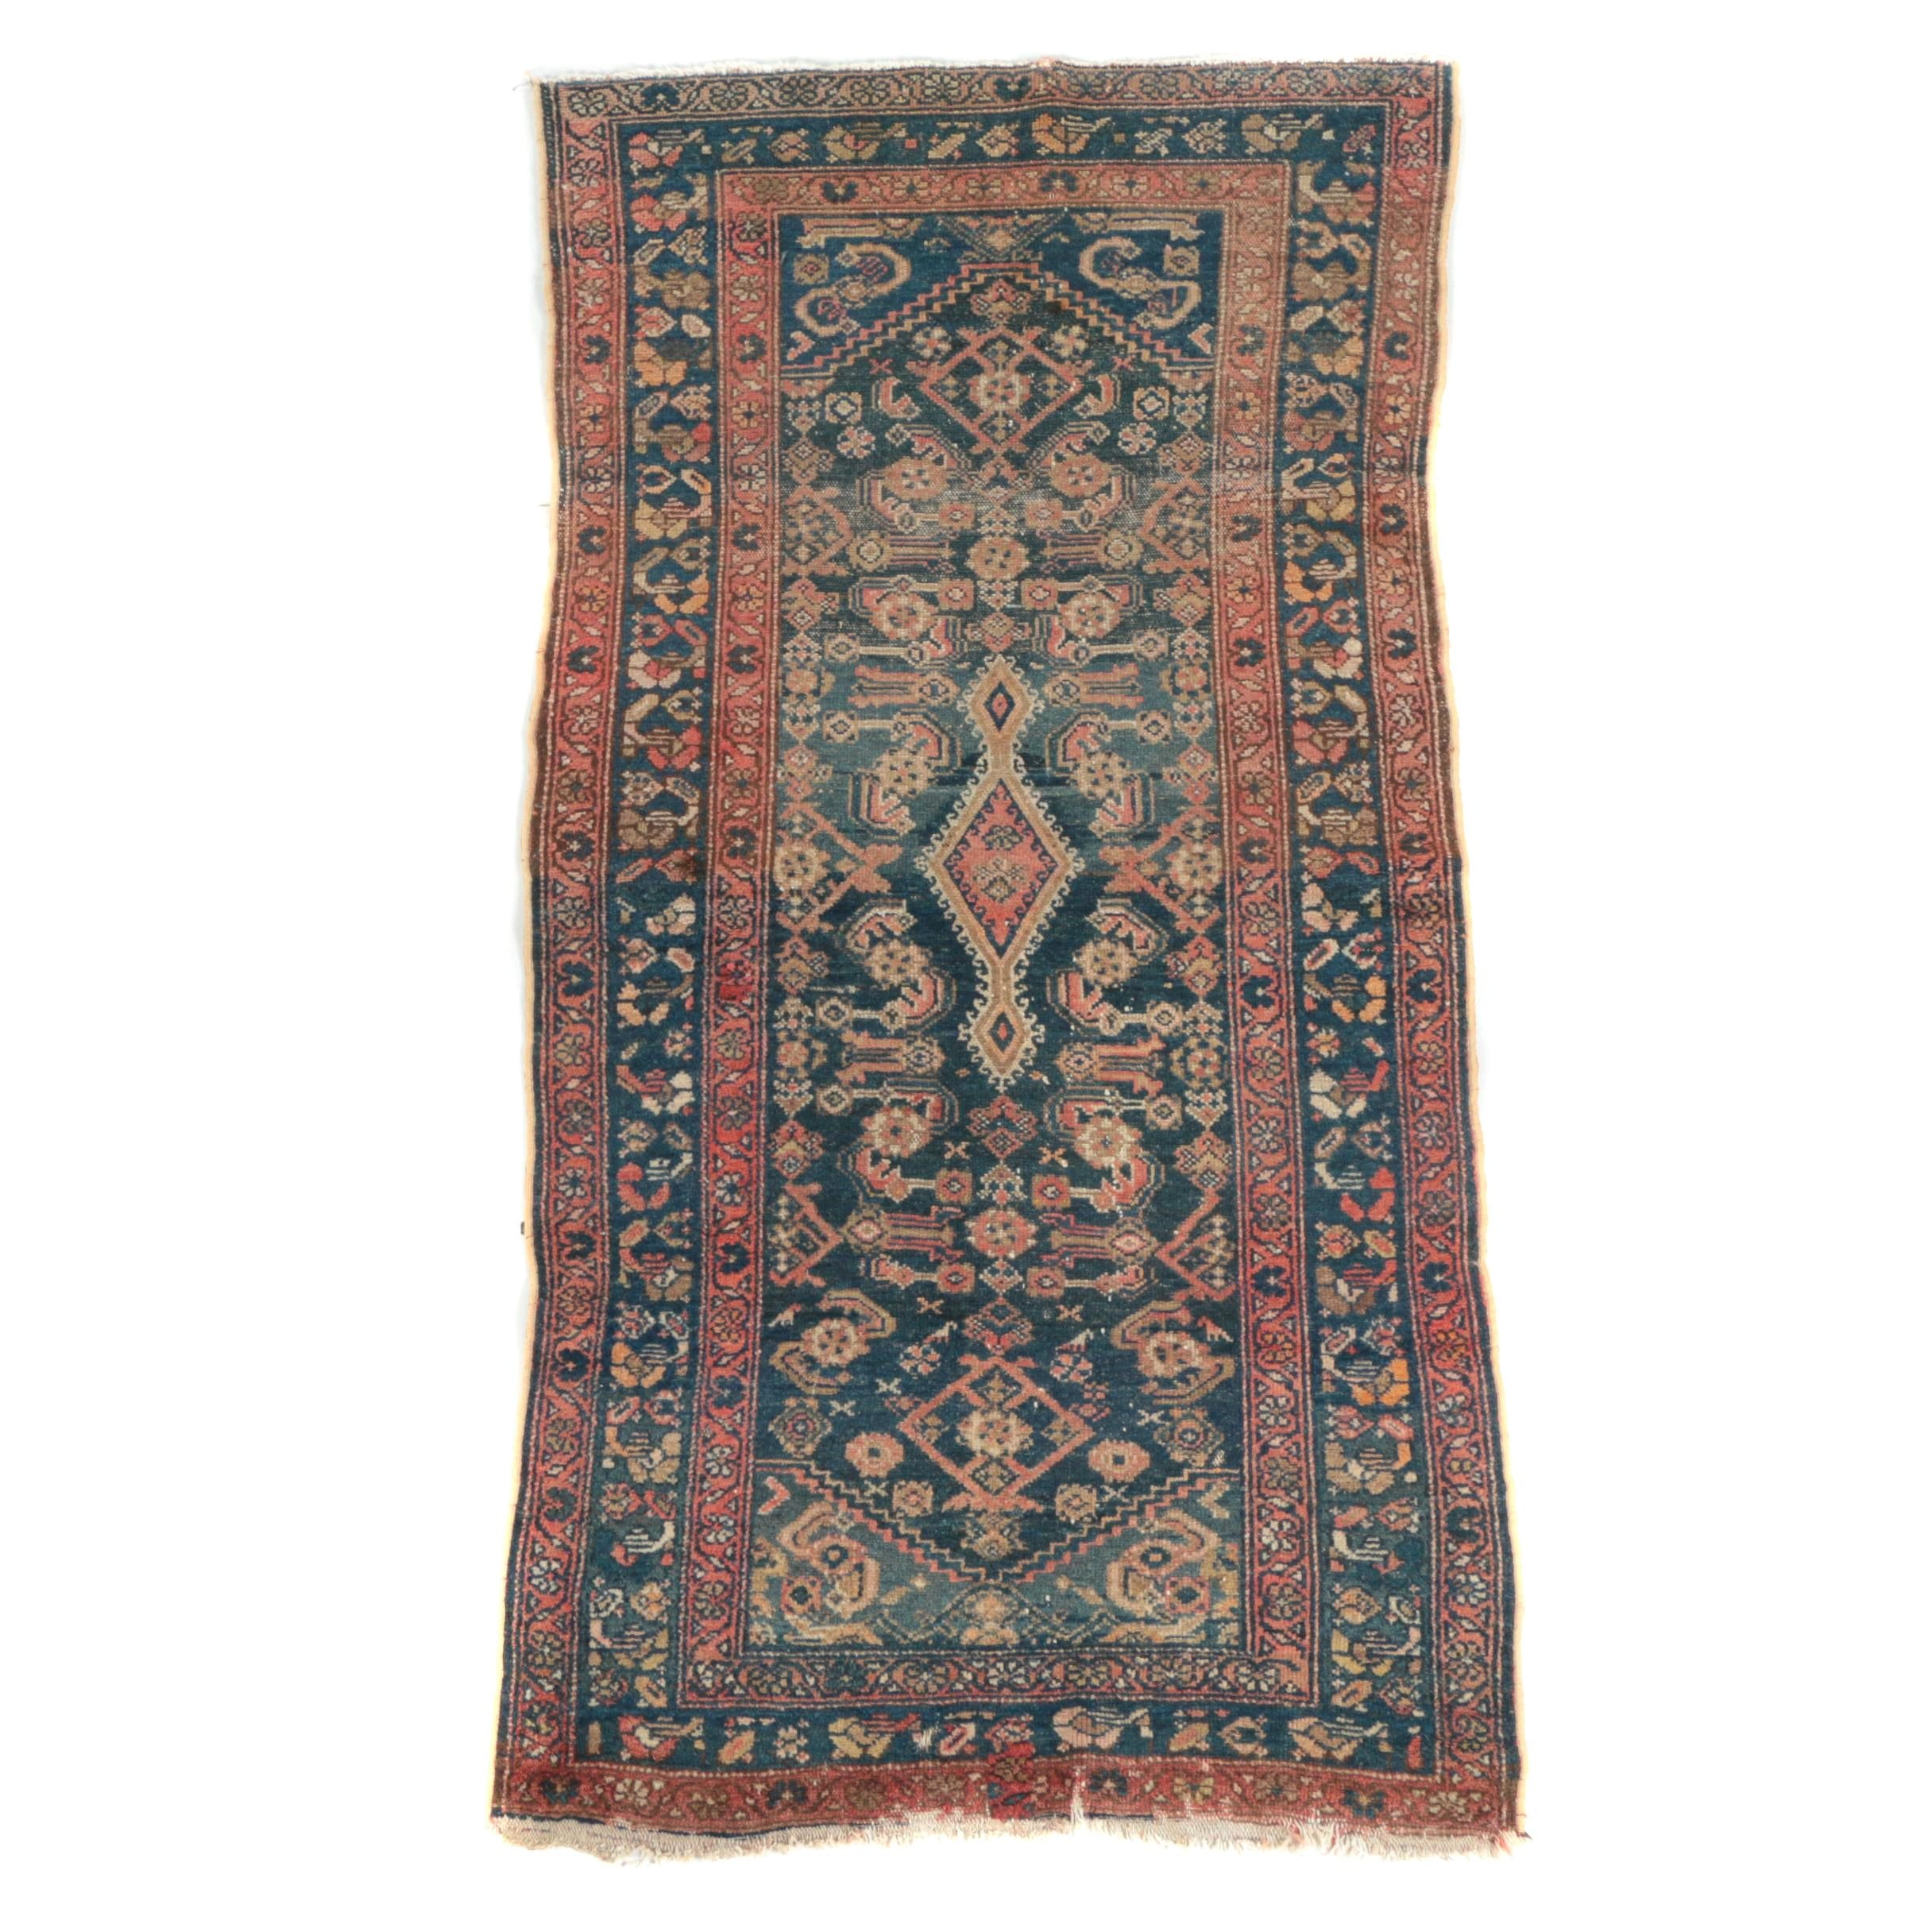 Semi-Antique Hand-Knotted Persian Wool Area Rug